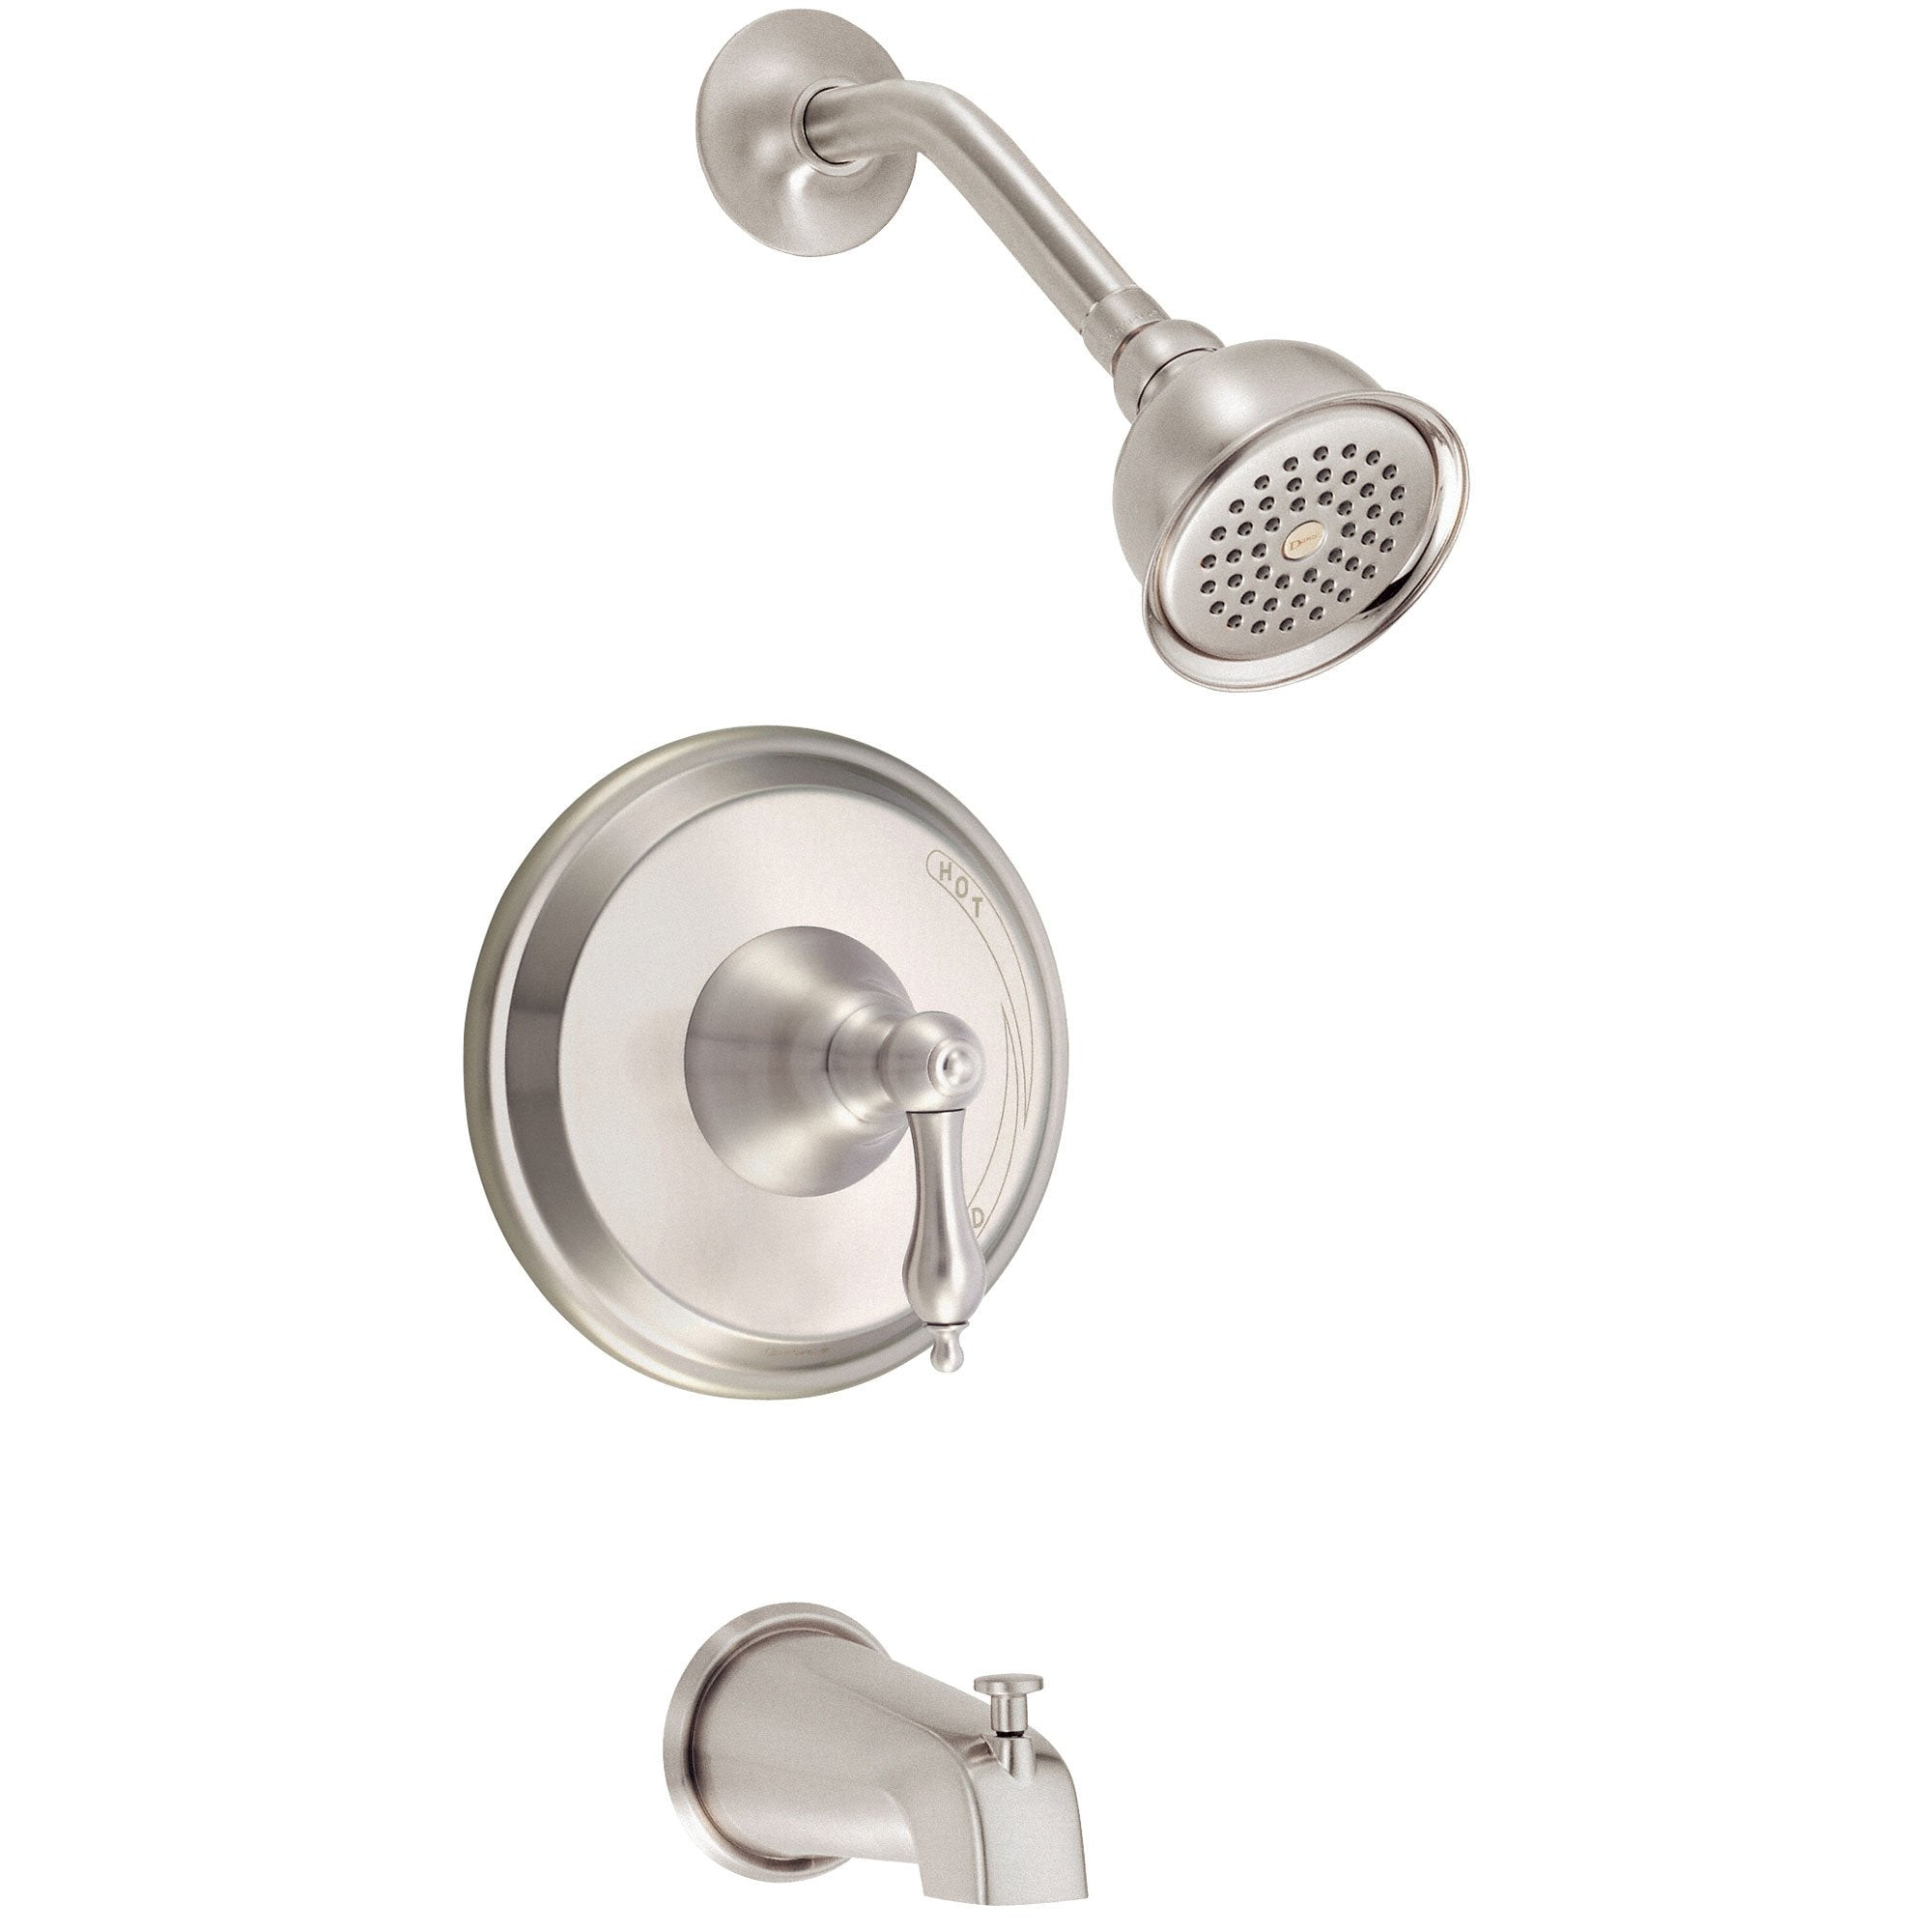 Danze Fairmont Brushed Nickel Single Lever Handle Tub & Shower Combo Faucet INCLUDES Rough-in Valve